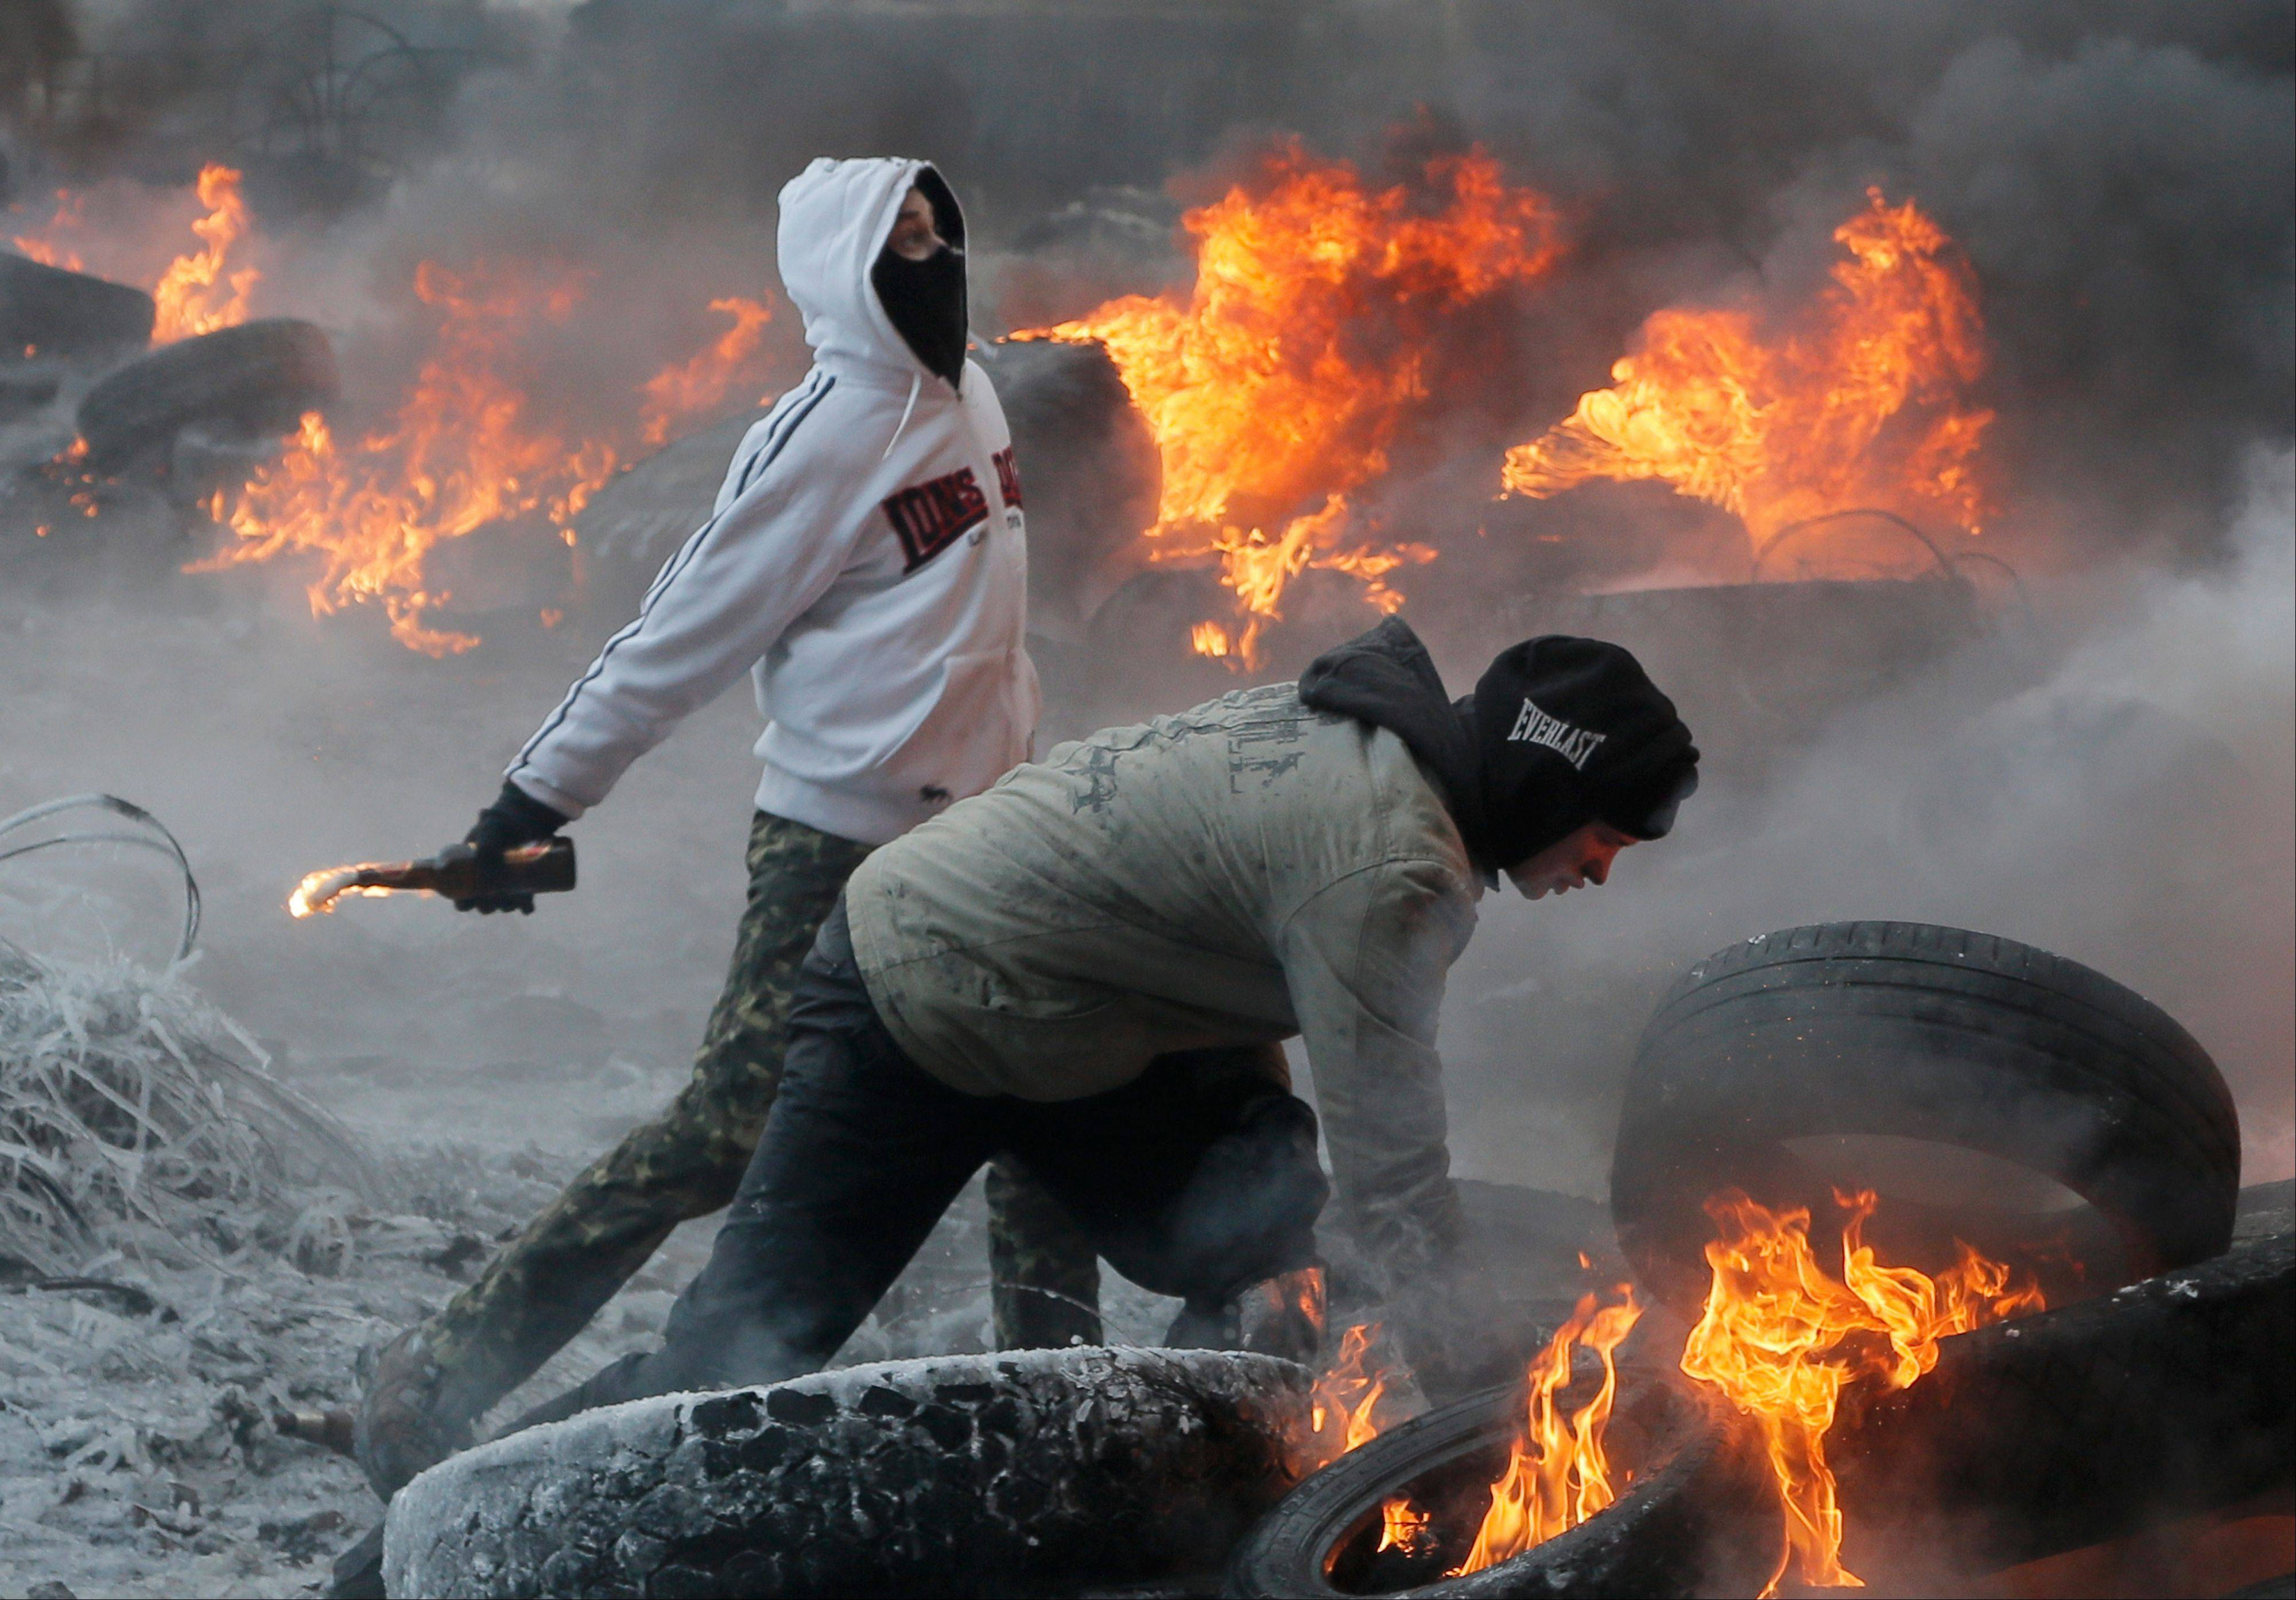 Protesters throw Molotov cocktails at riot police Saturday during a clash in central Kiev, Ukraine.